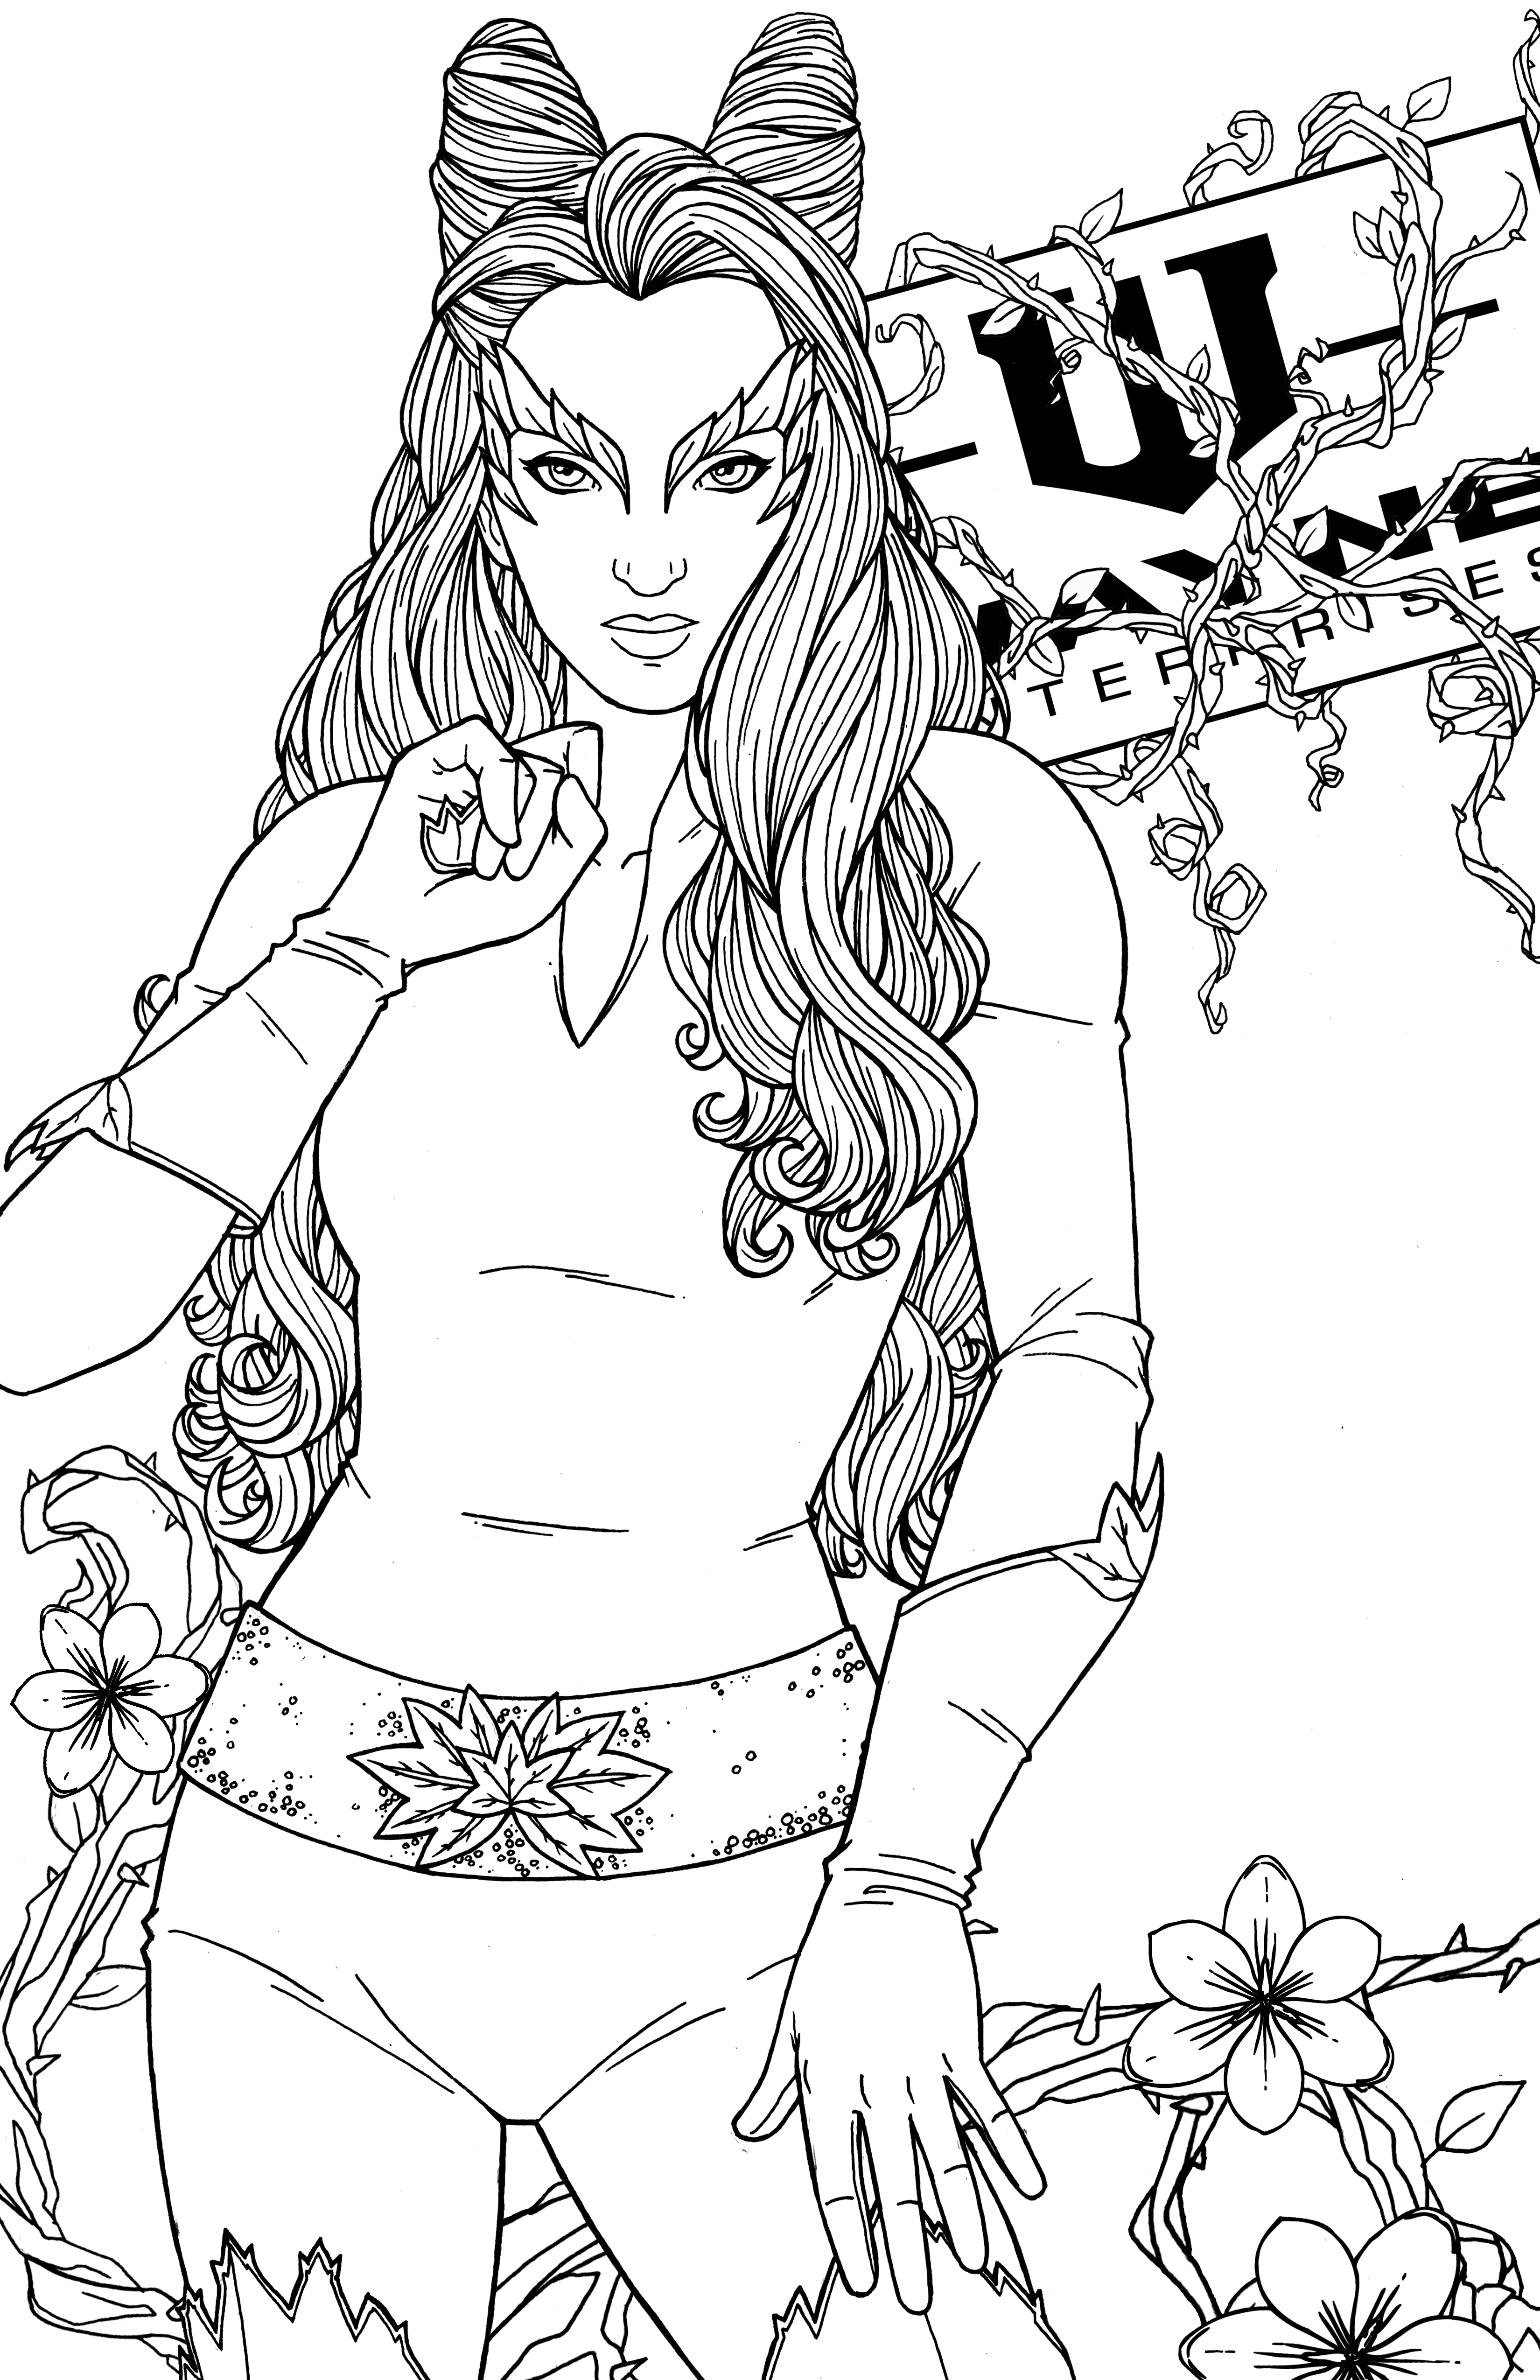 ivy coloring pages - photo#30